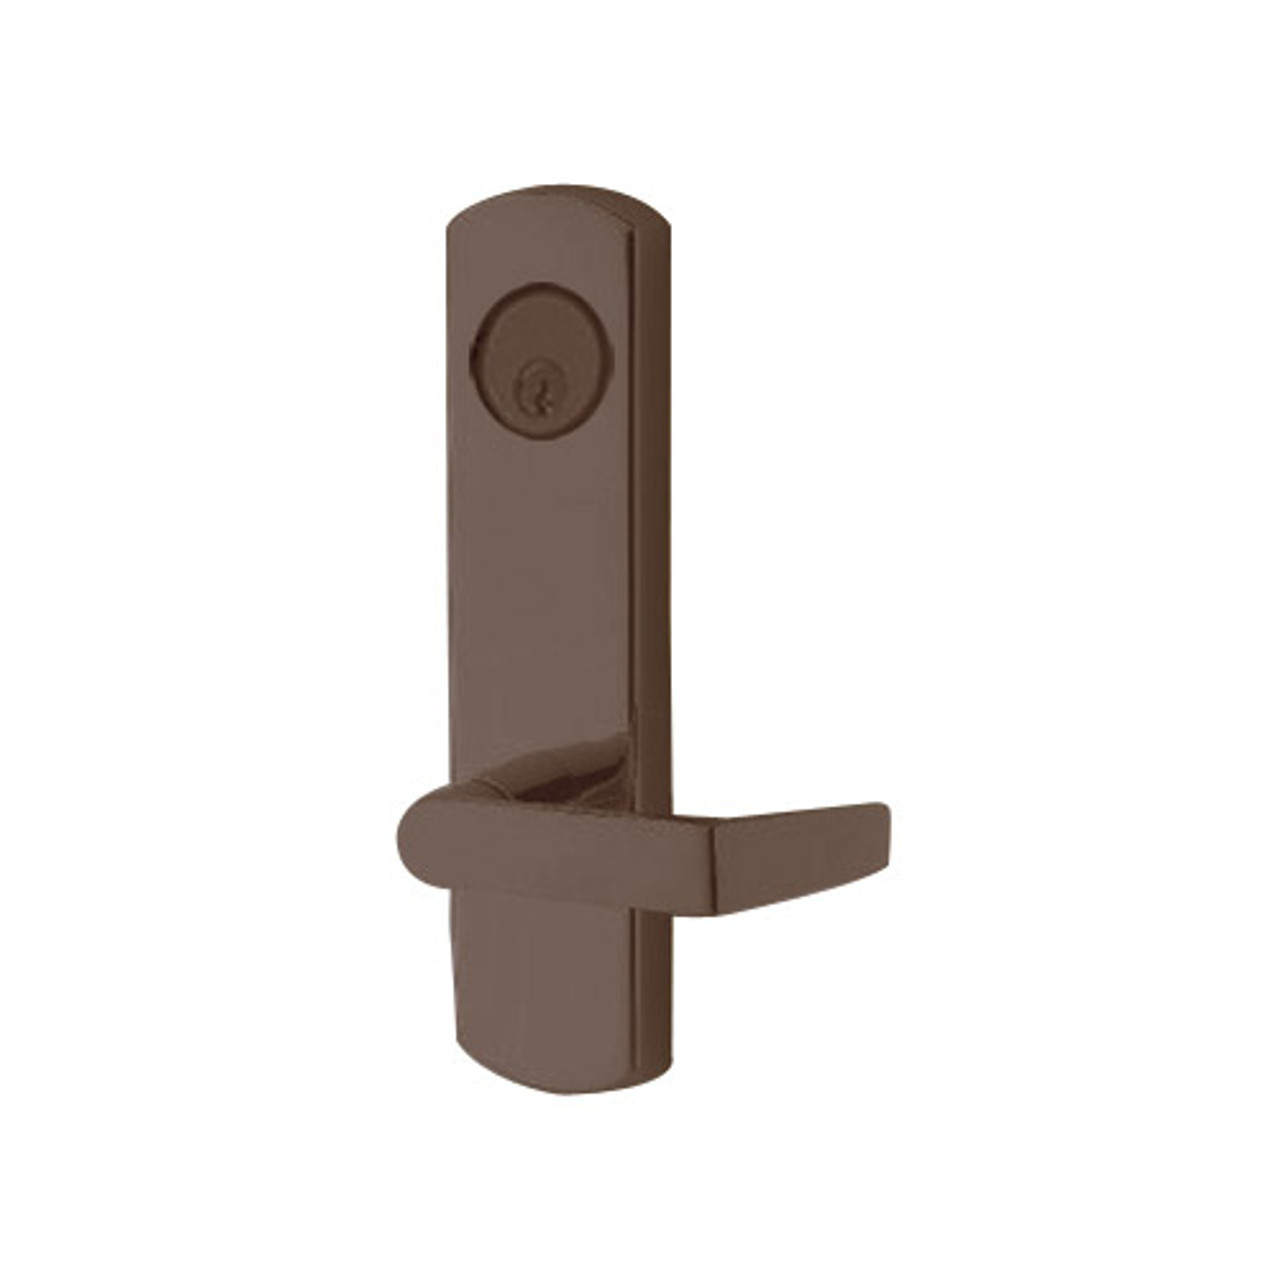 3080E-03-0-93-55 US10B Adams Rite Electrified Entry Trim with Square Lever in Oil Rubbed Bronze Finish